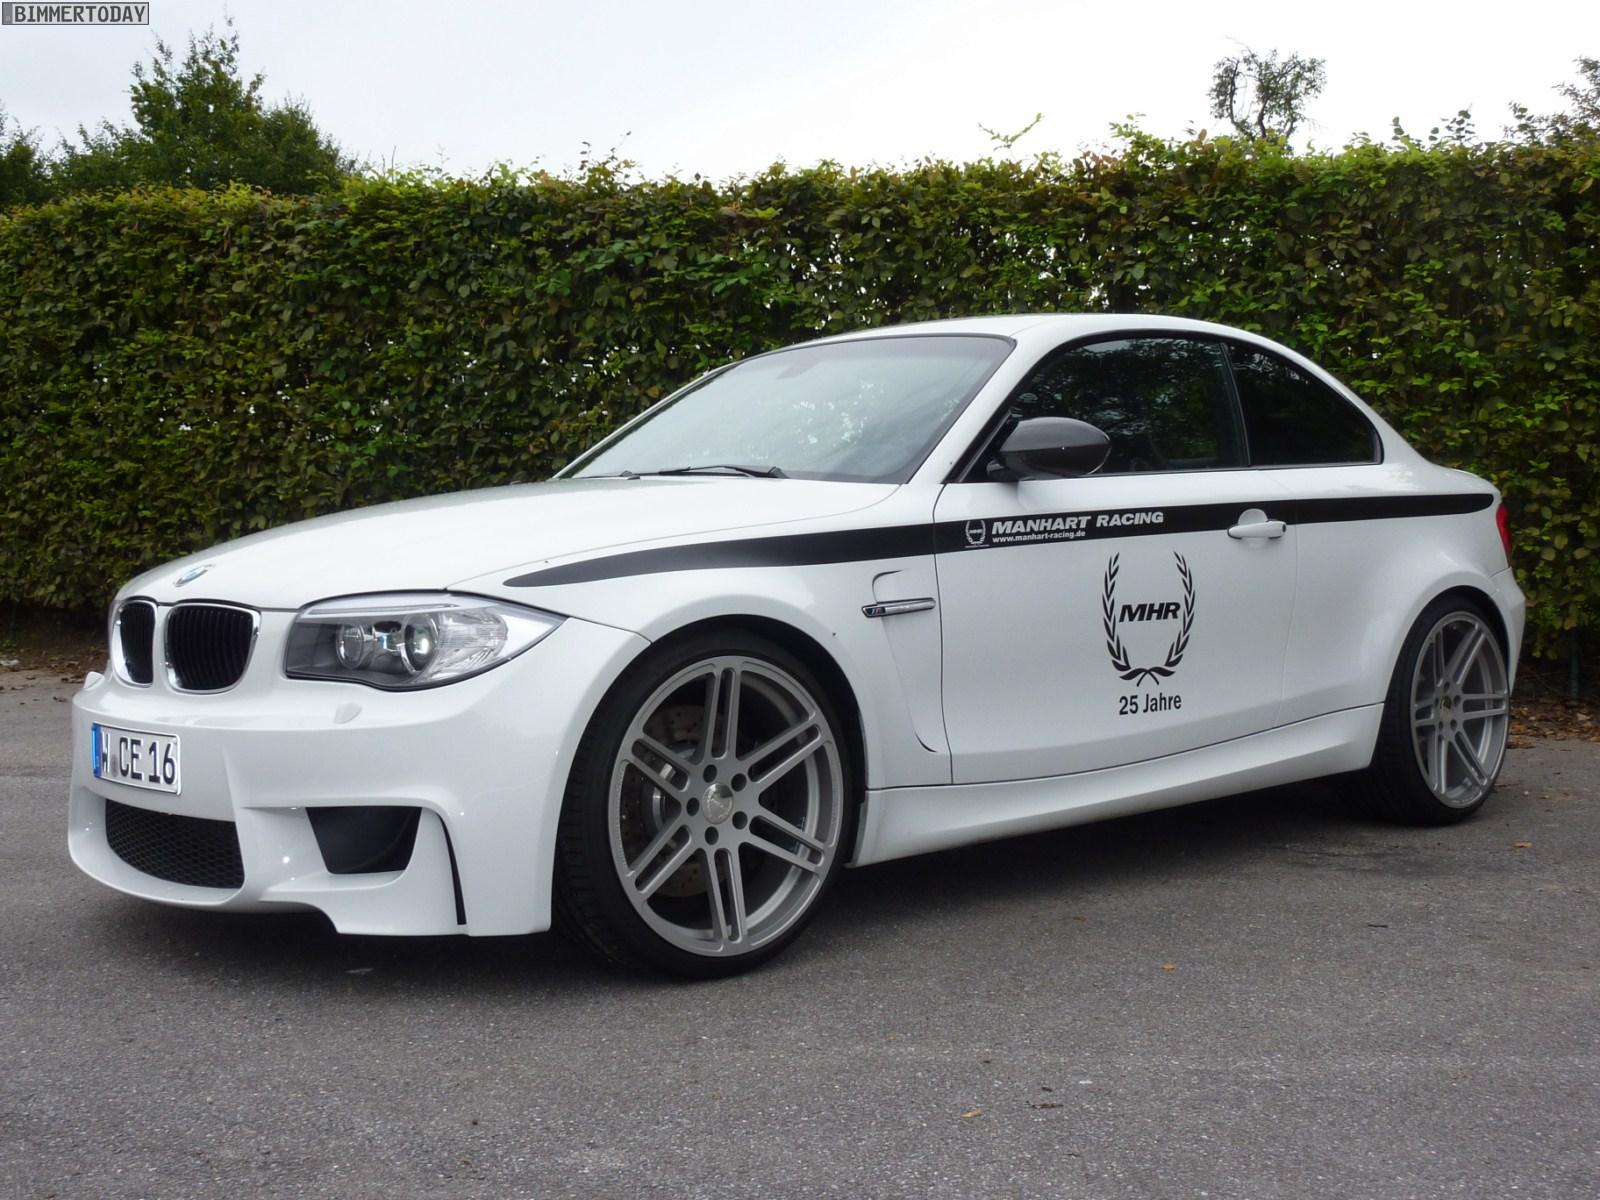 2012 Bmw 1 Series M Coupe By Manhart Racing Top Speed